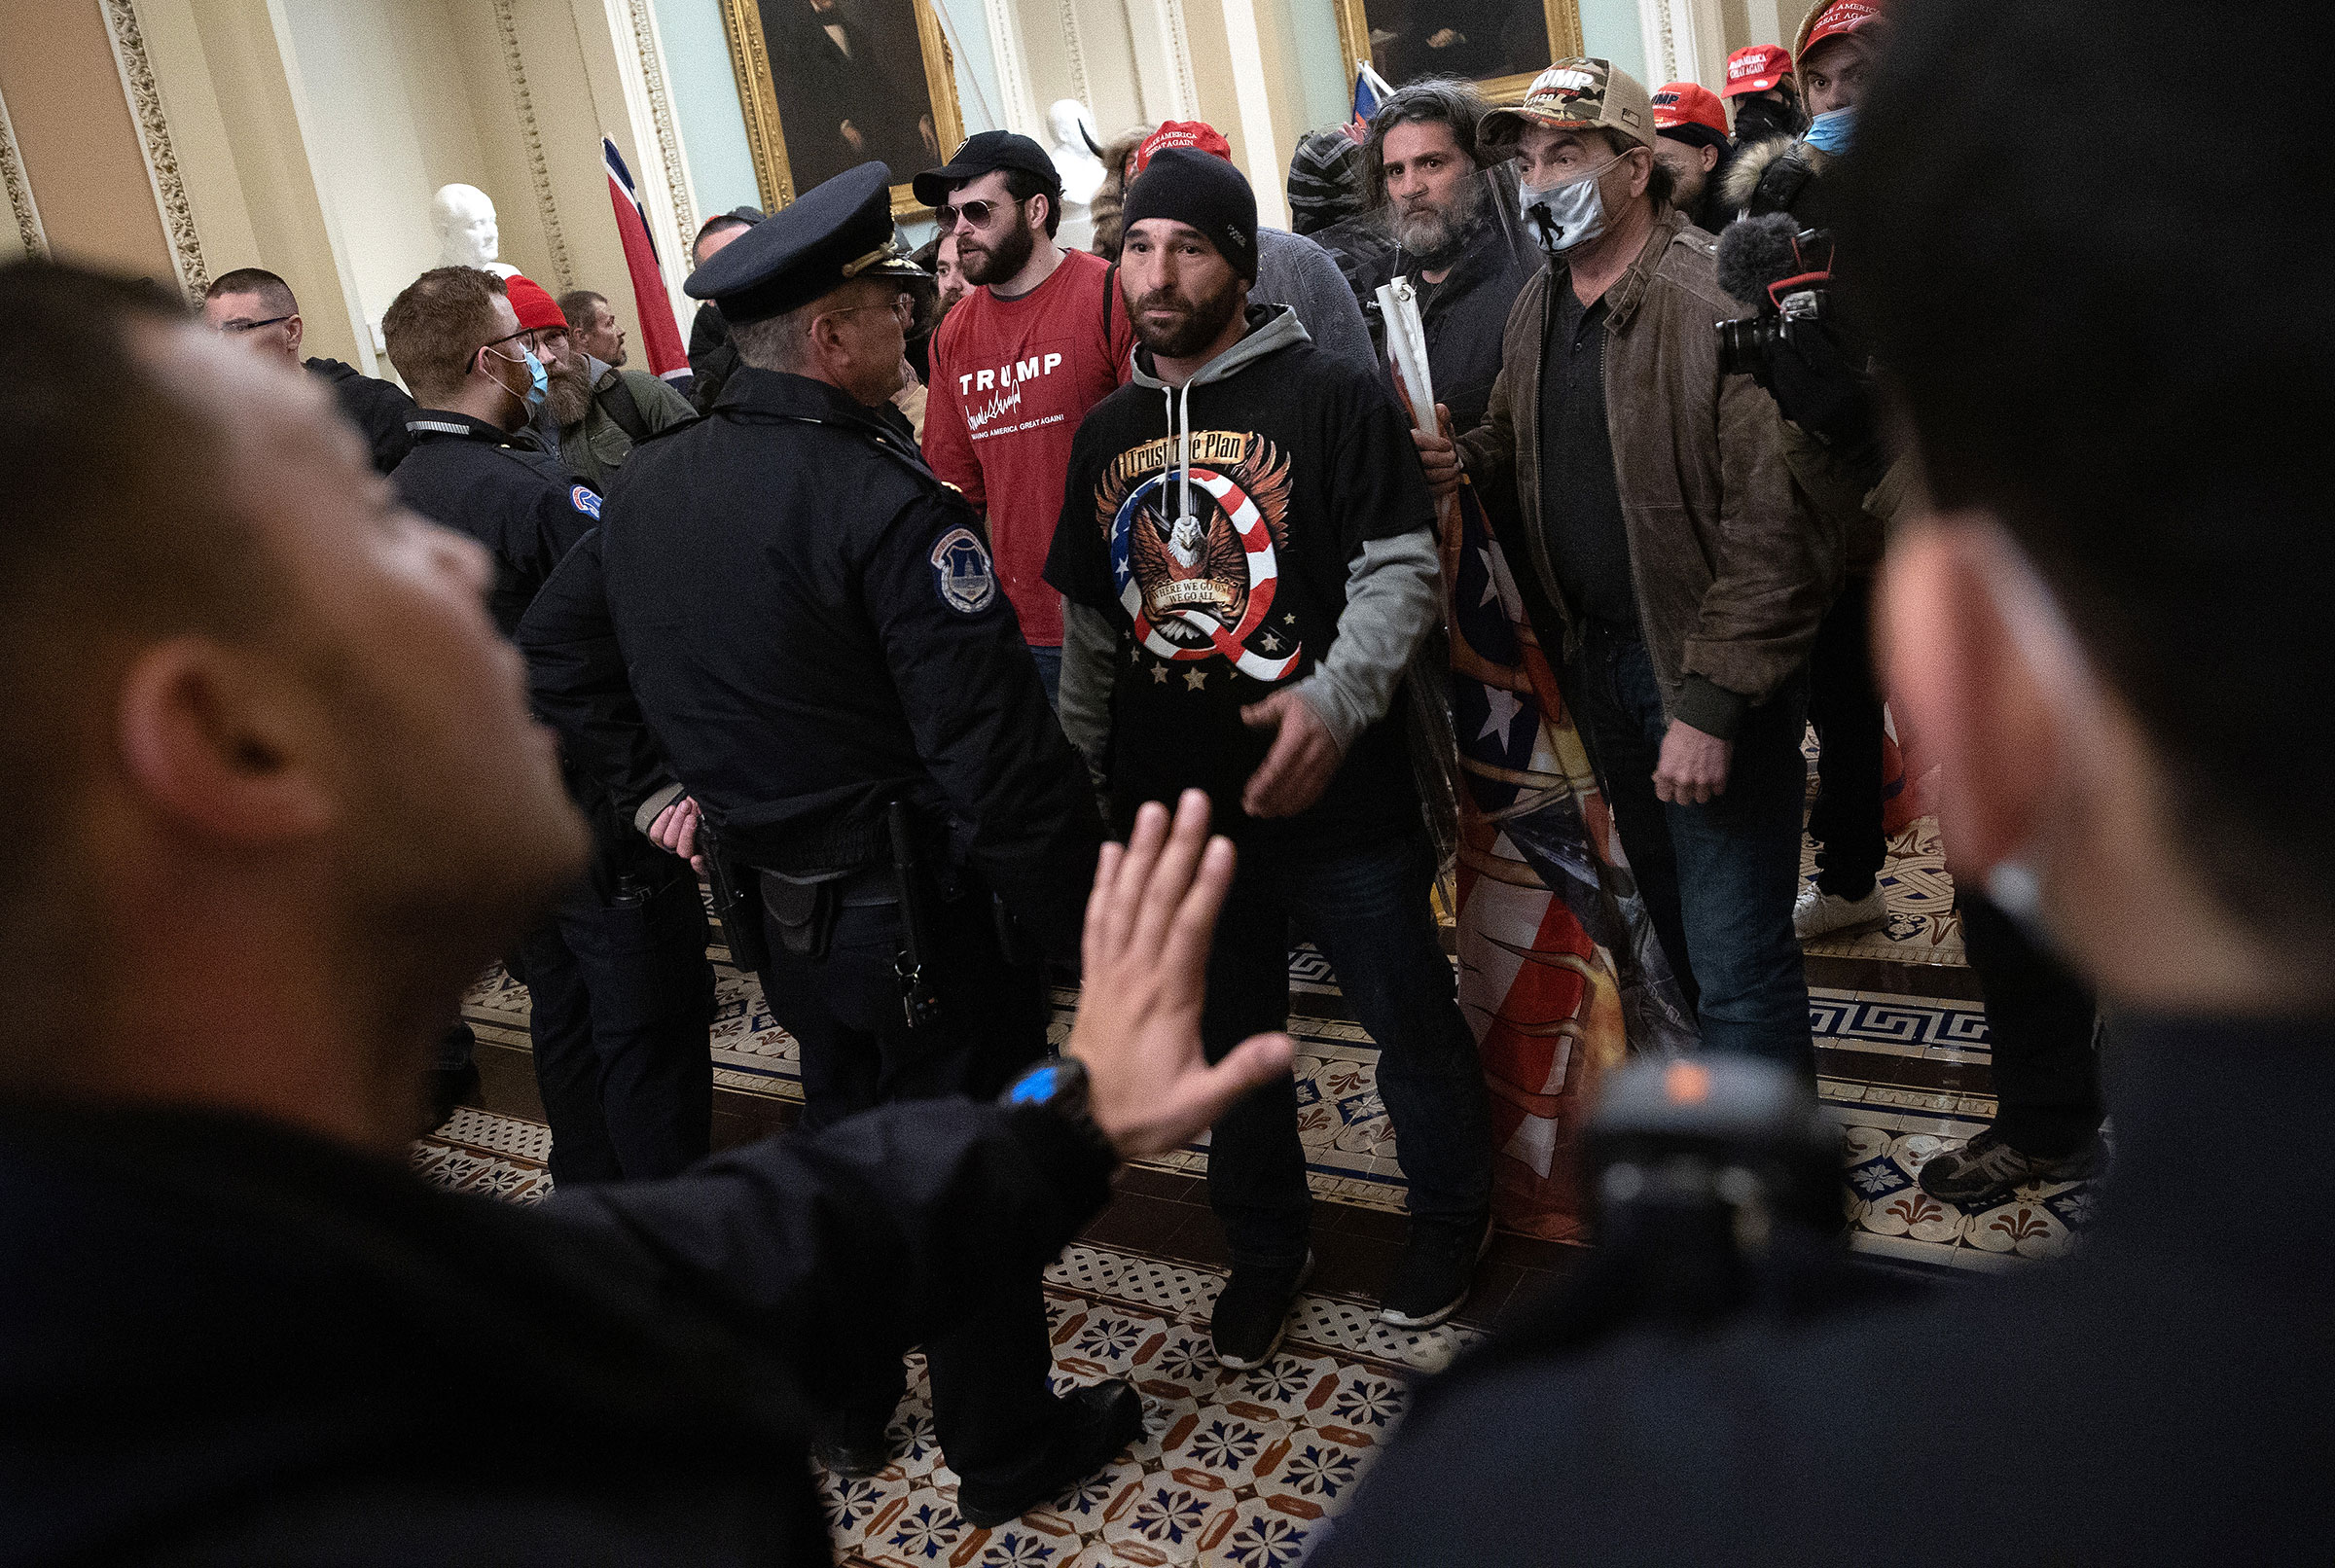 A pro-Trump mob confronts U.S. Capitol police after the group stormed the building on Jan. 06, 2021.